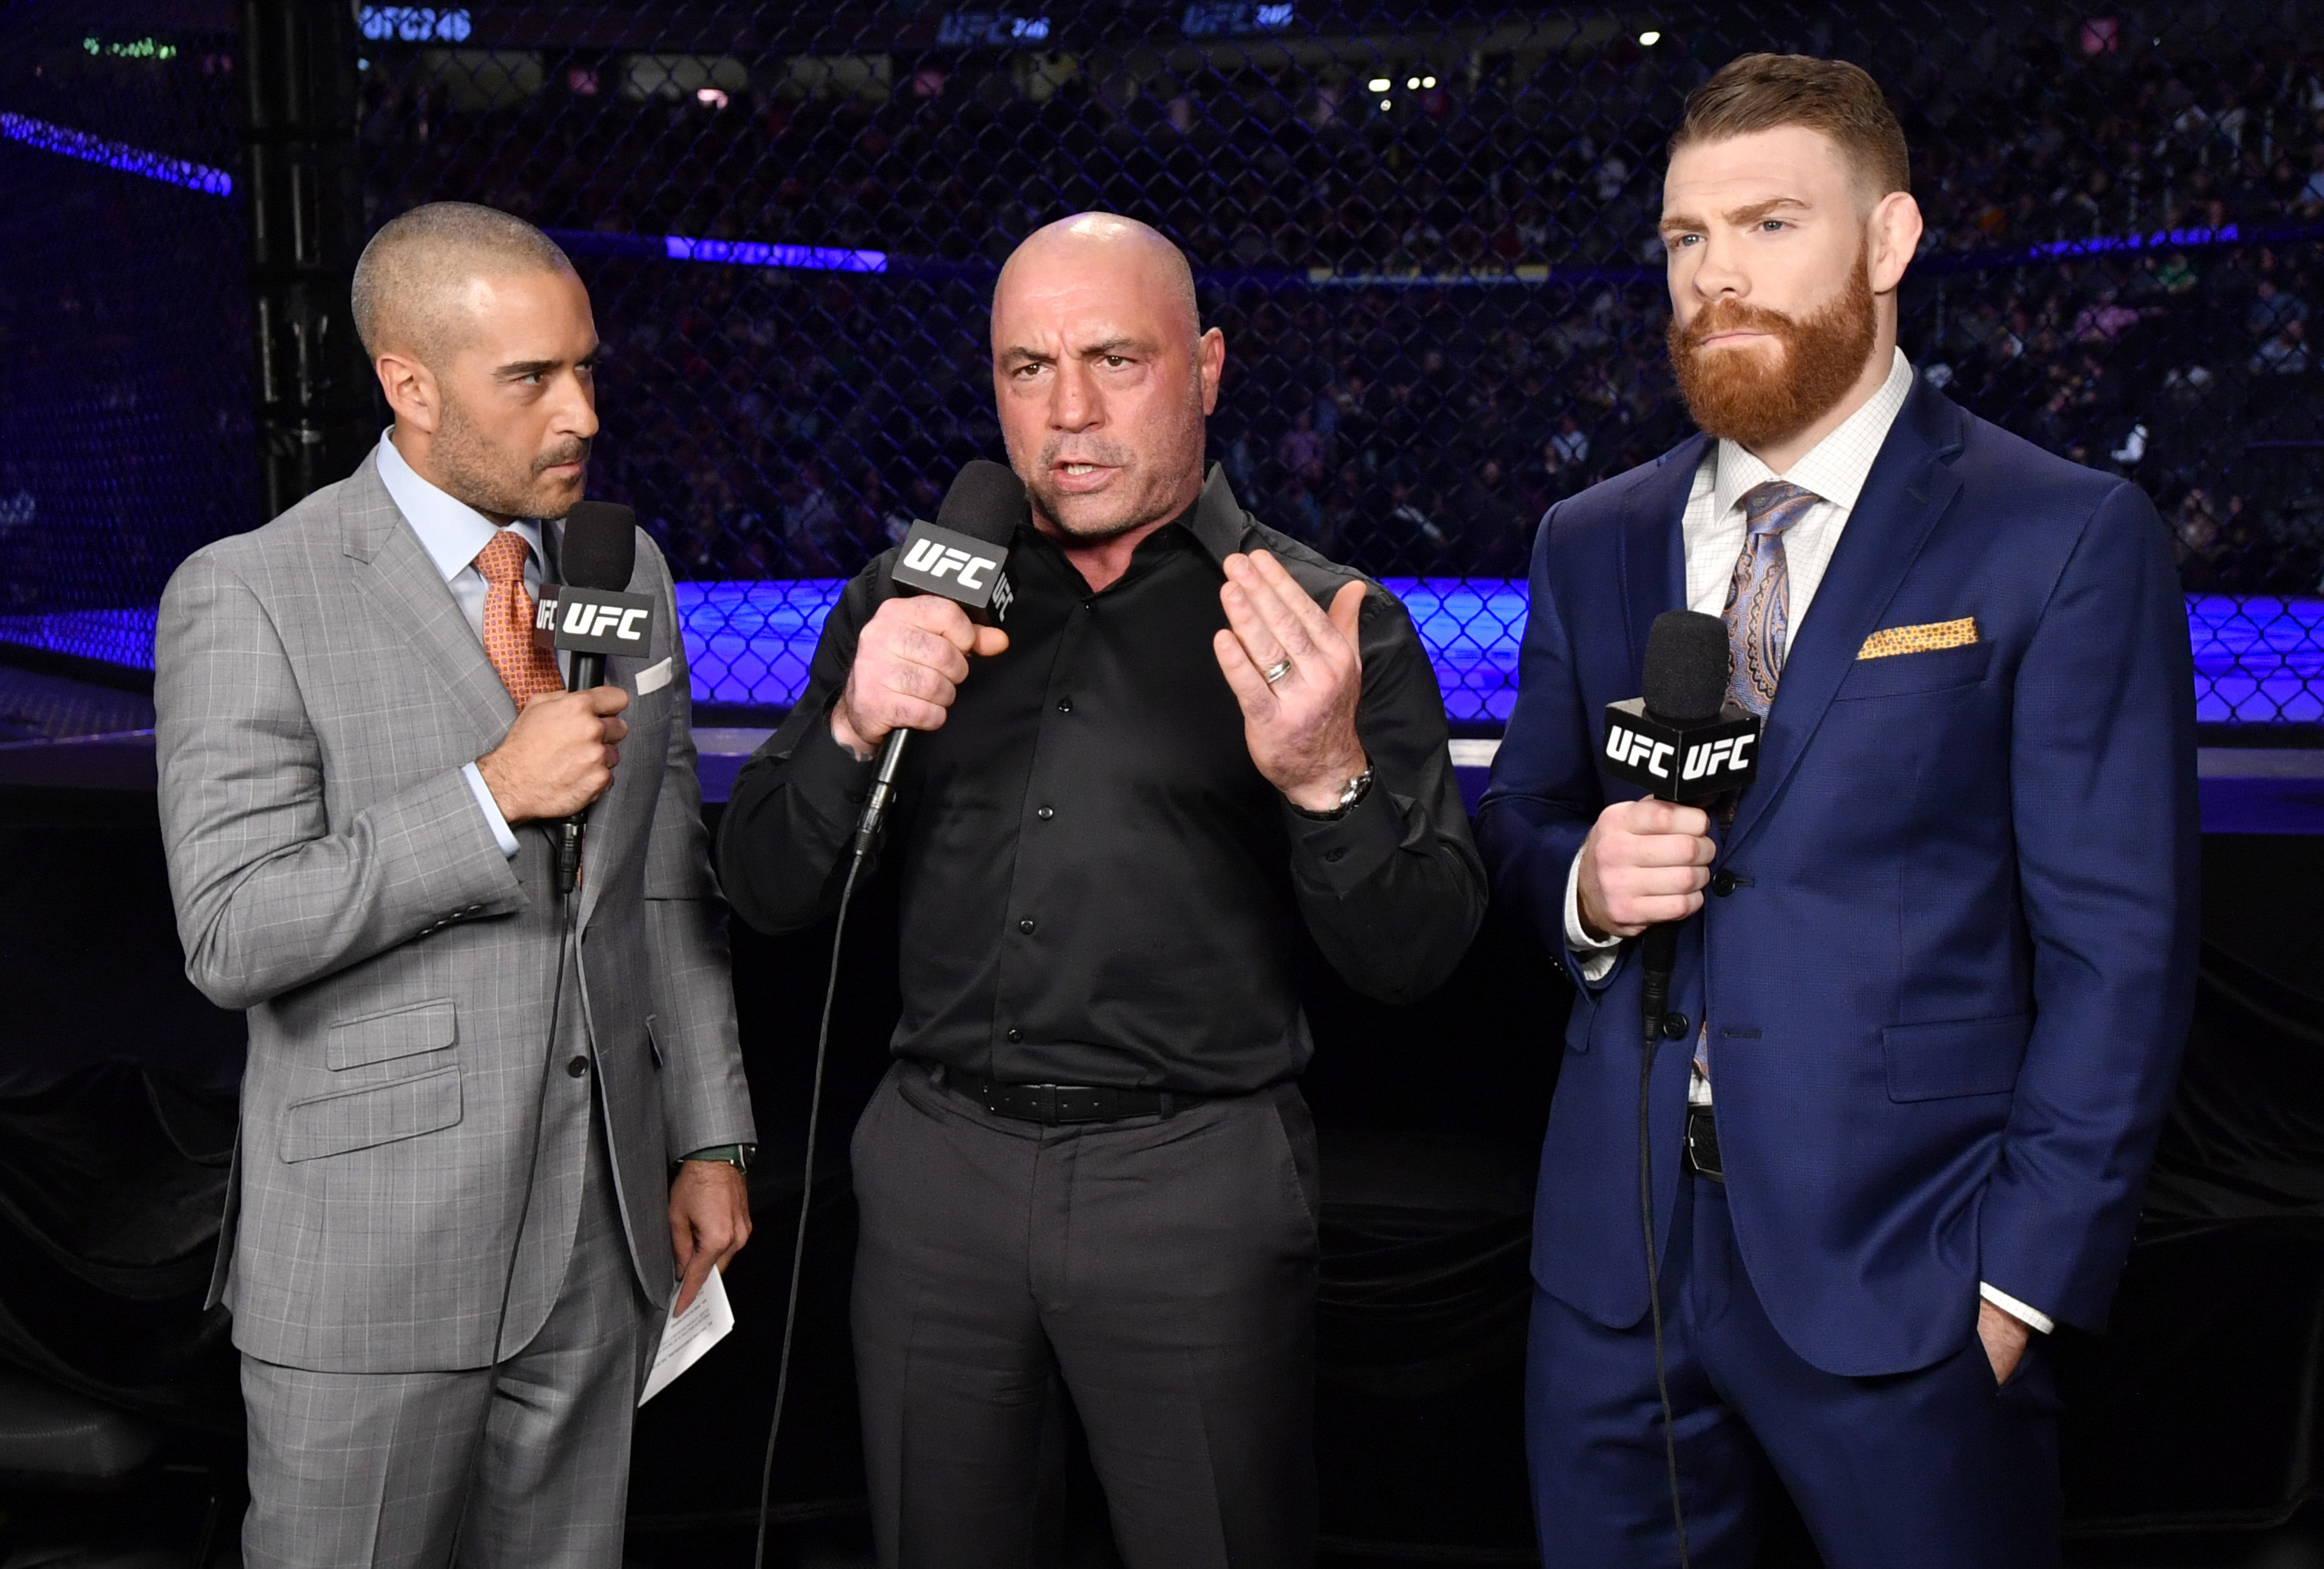 Joe Rogan has skipped the past two UFC pay-per-view events